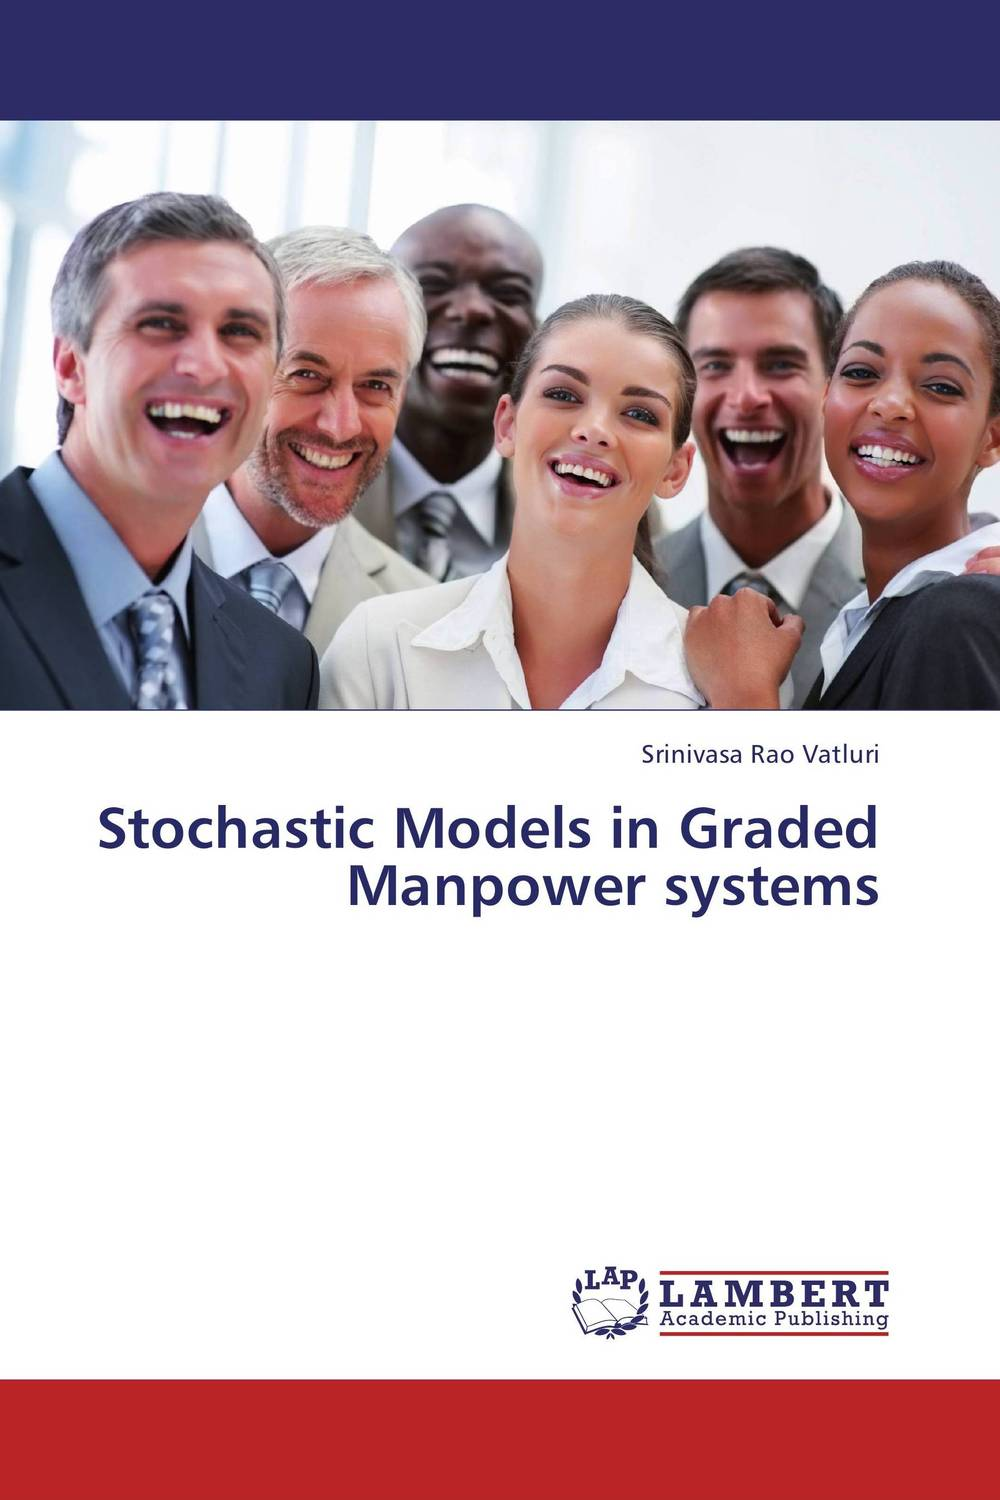 Stochastic Models in Graded Manpower systems